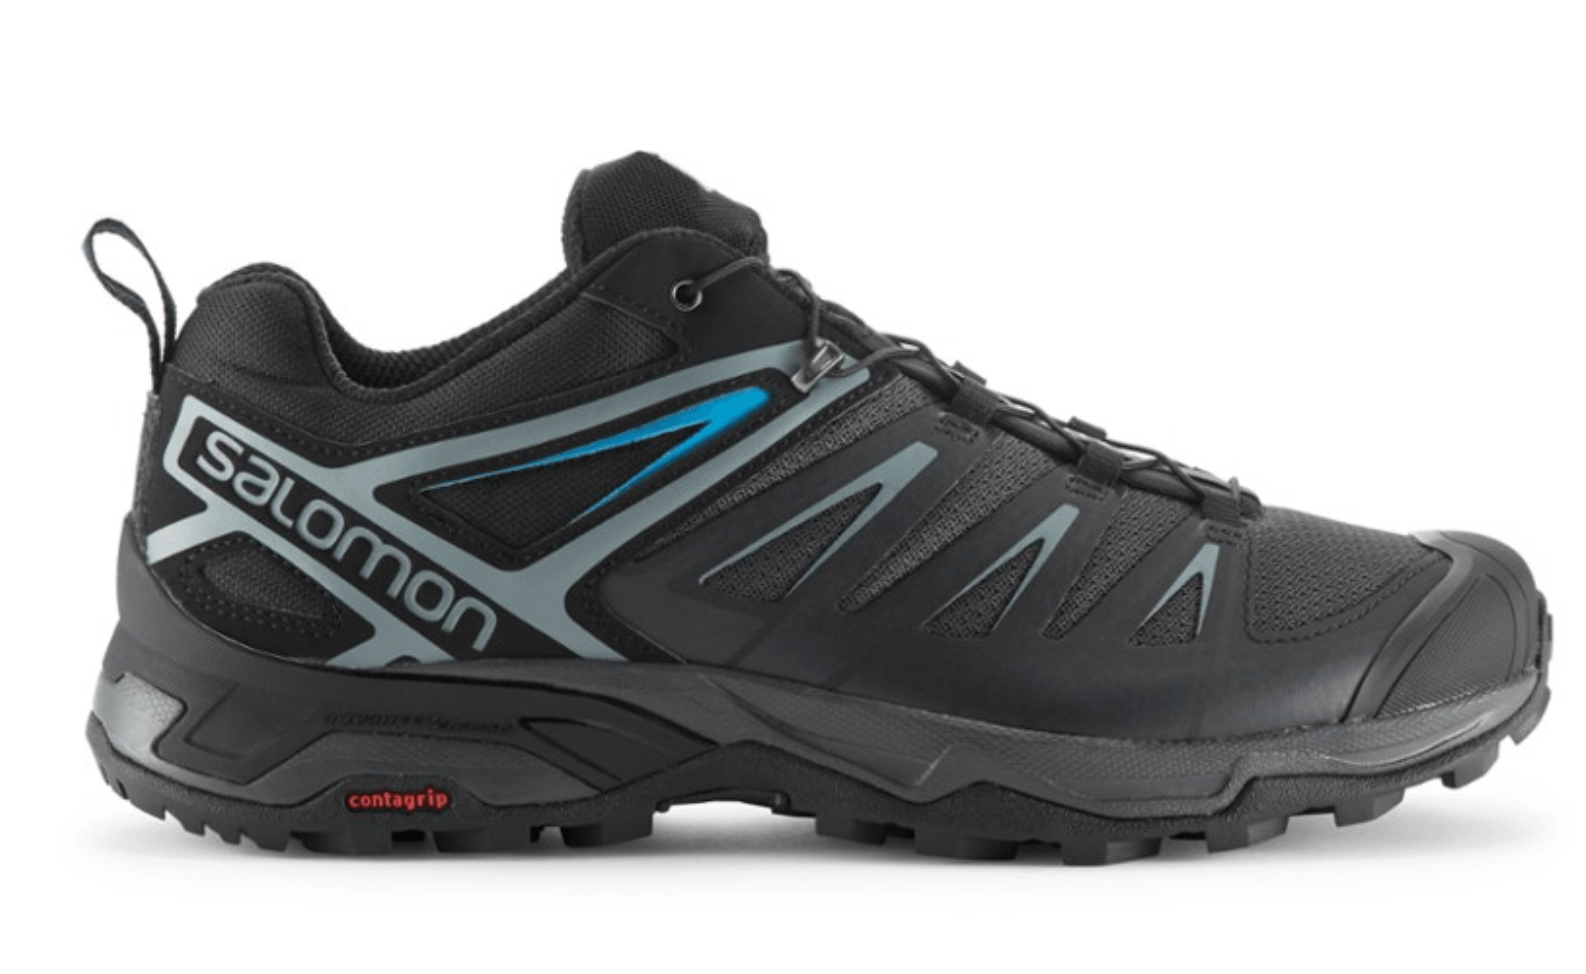 Salomon X Ultra 3 Low Aero